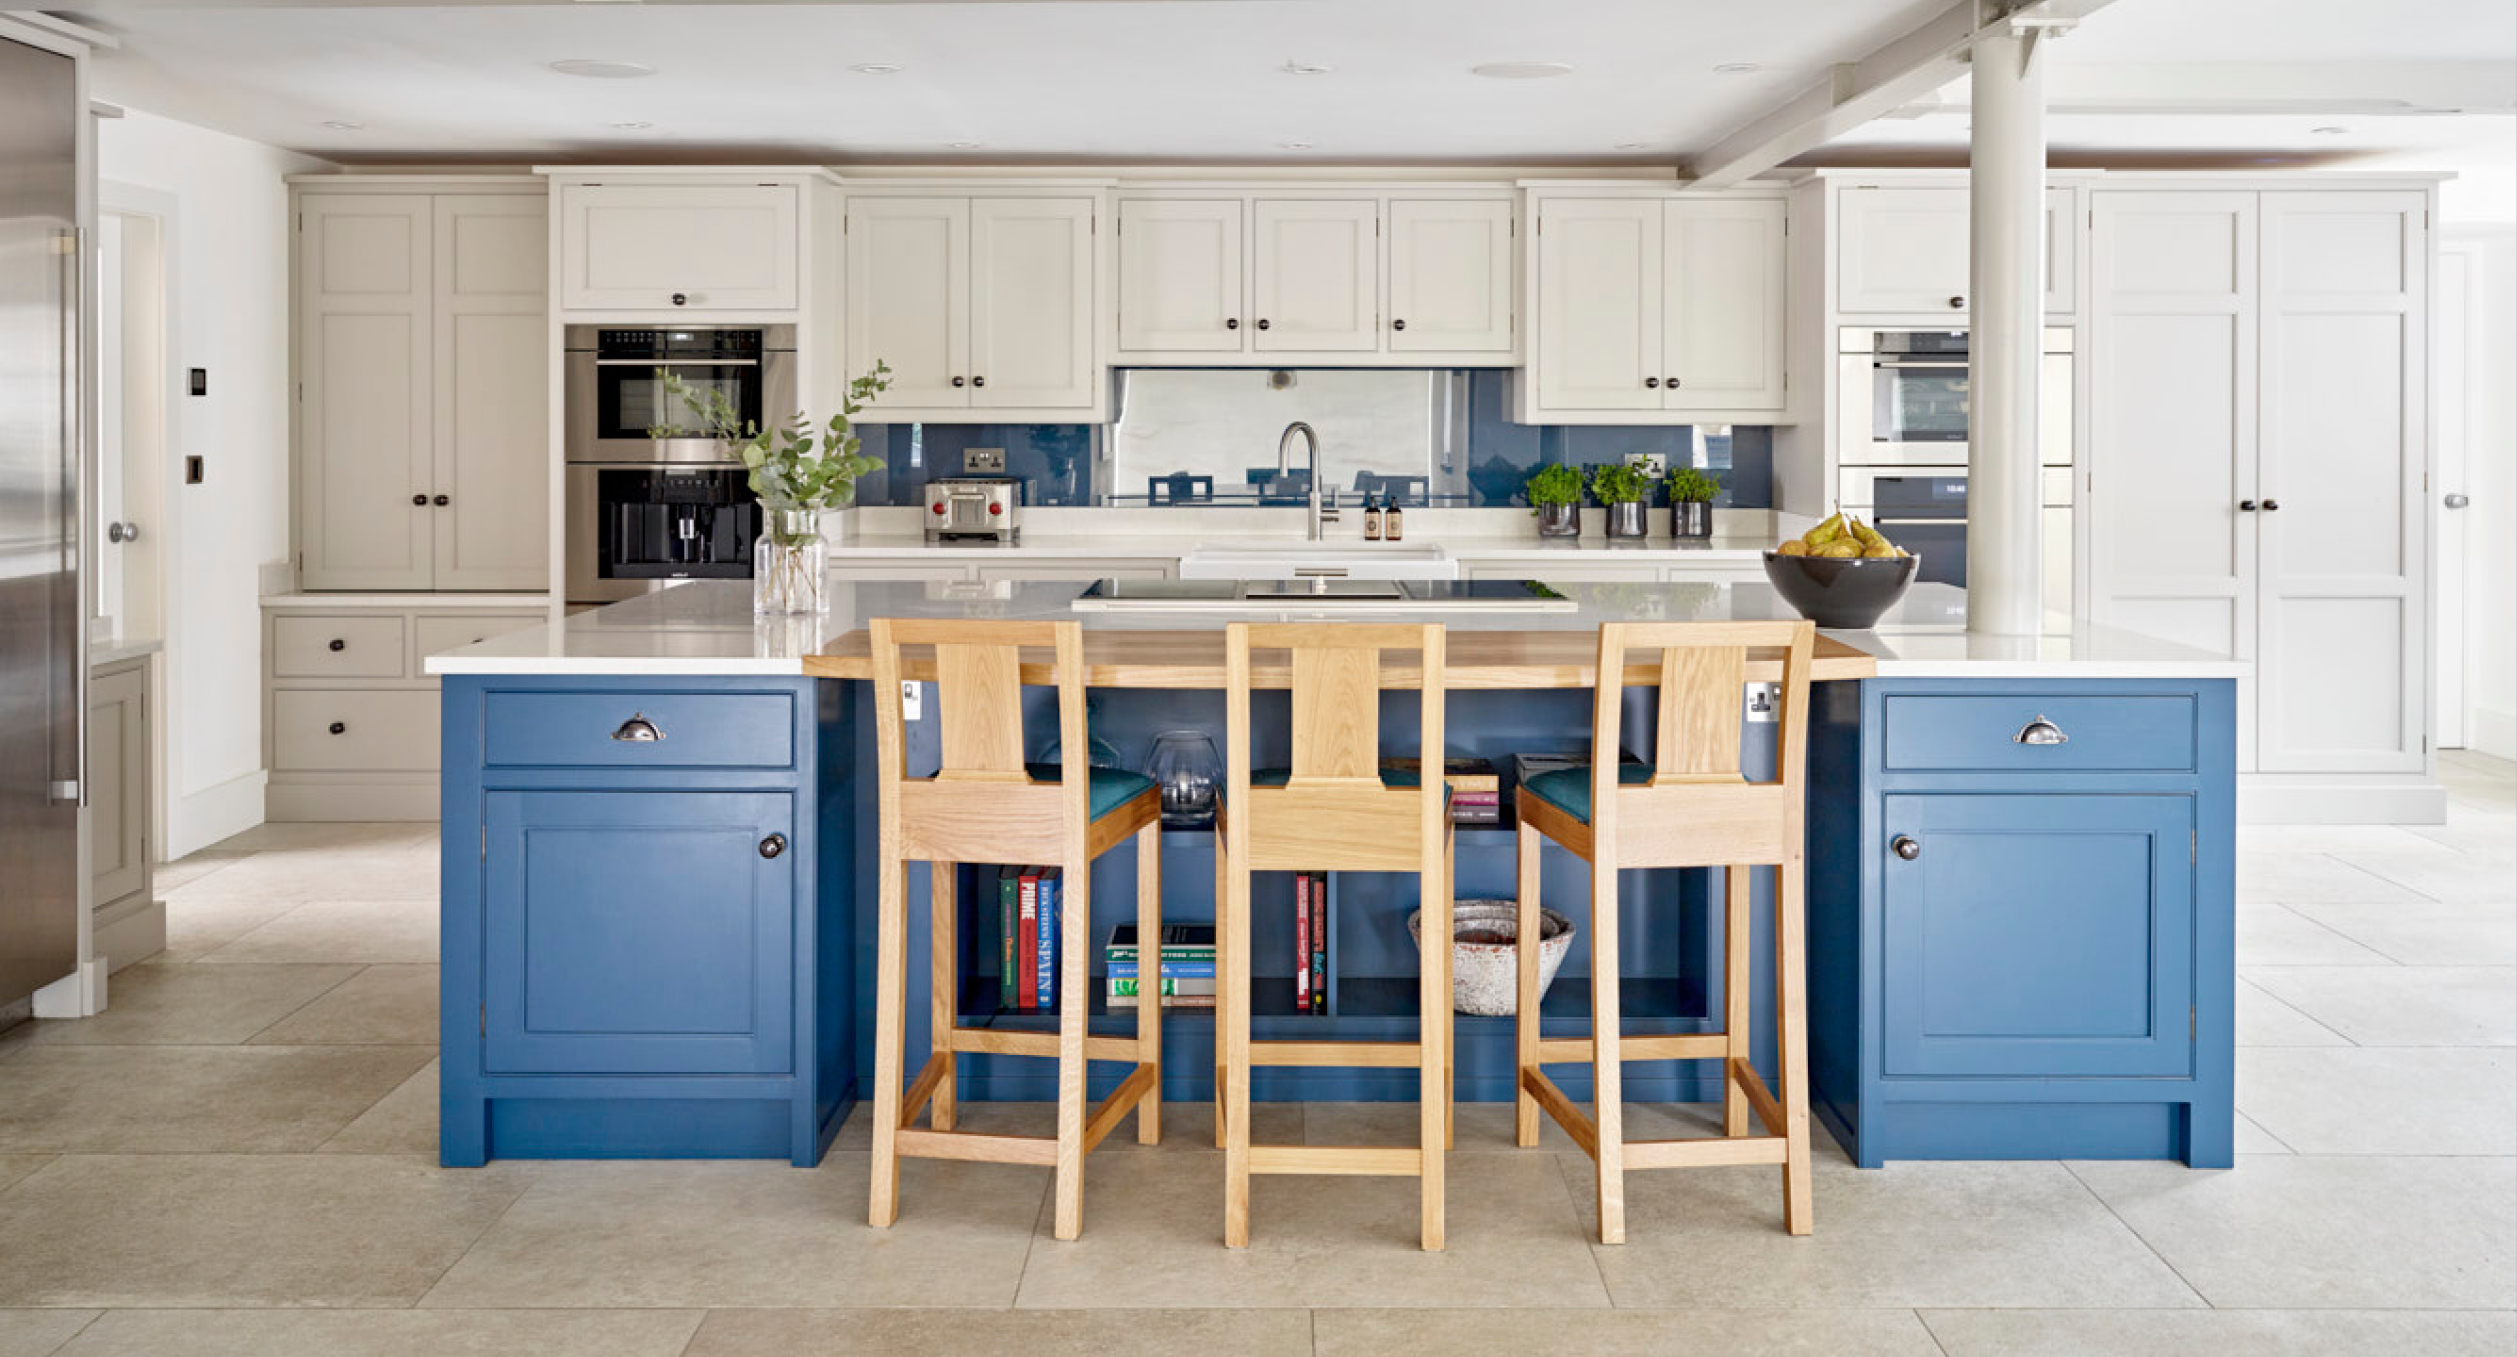 3 Contemporary blue and white kitchen